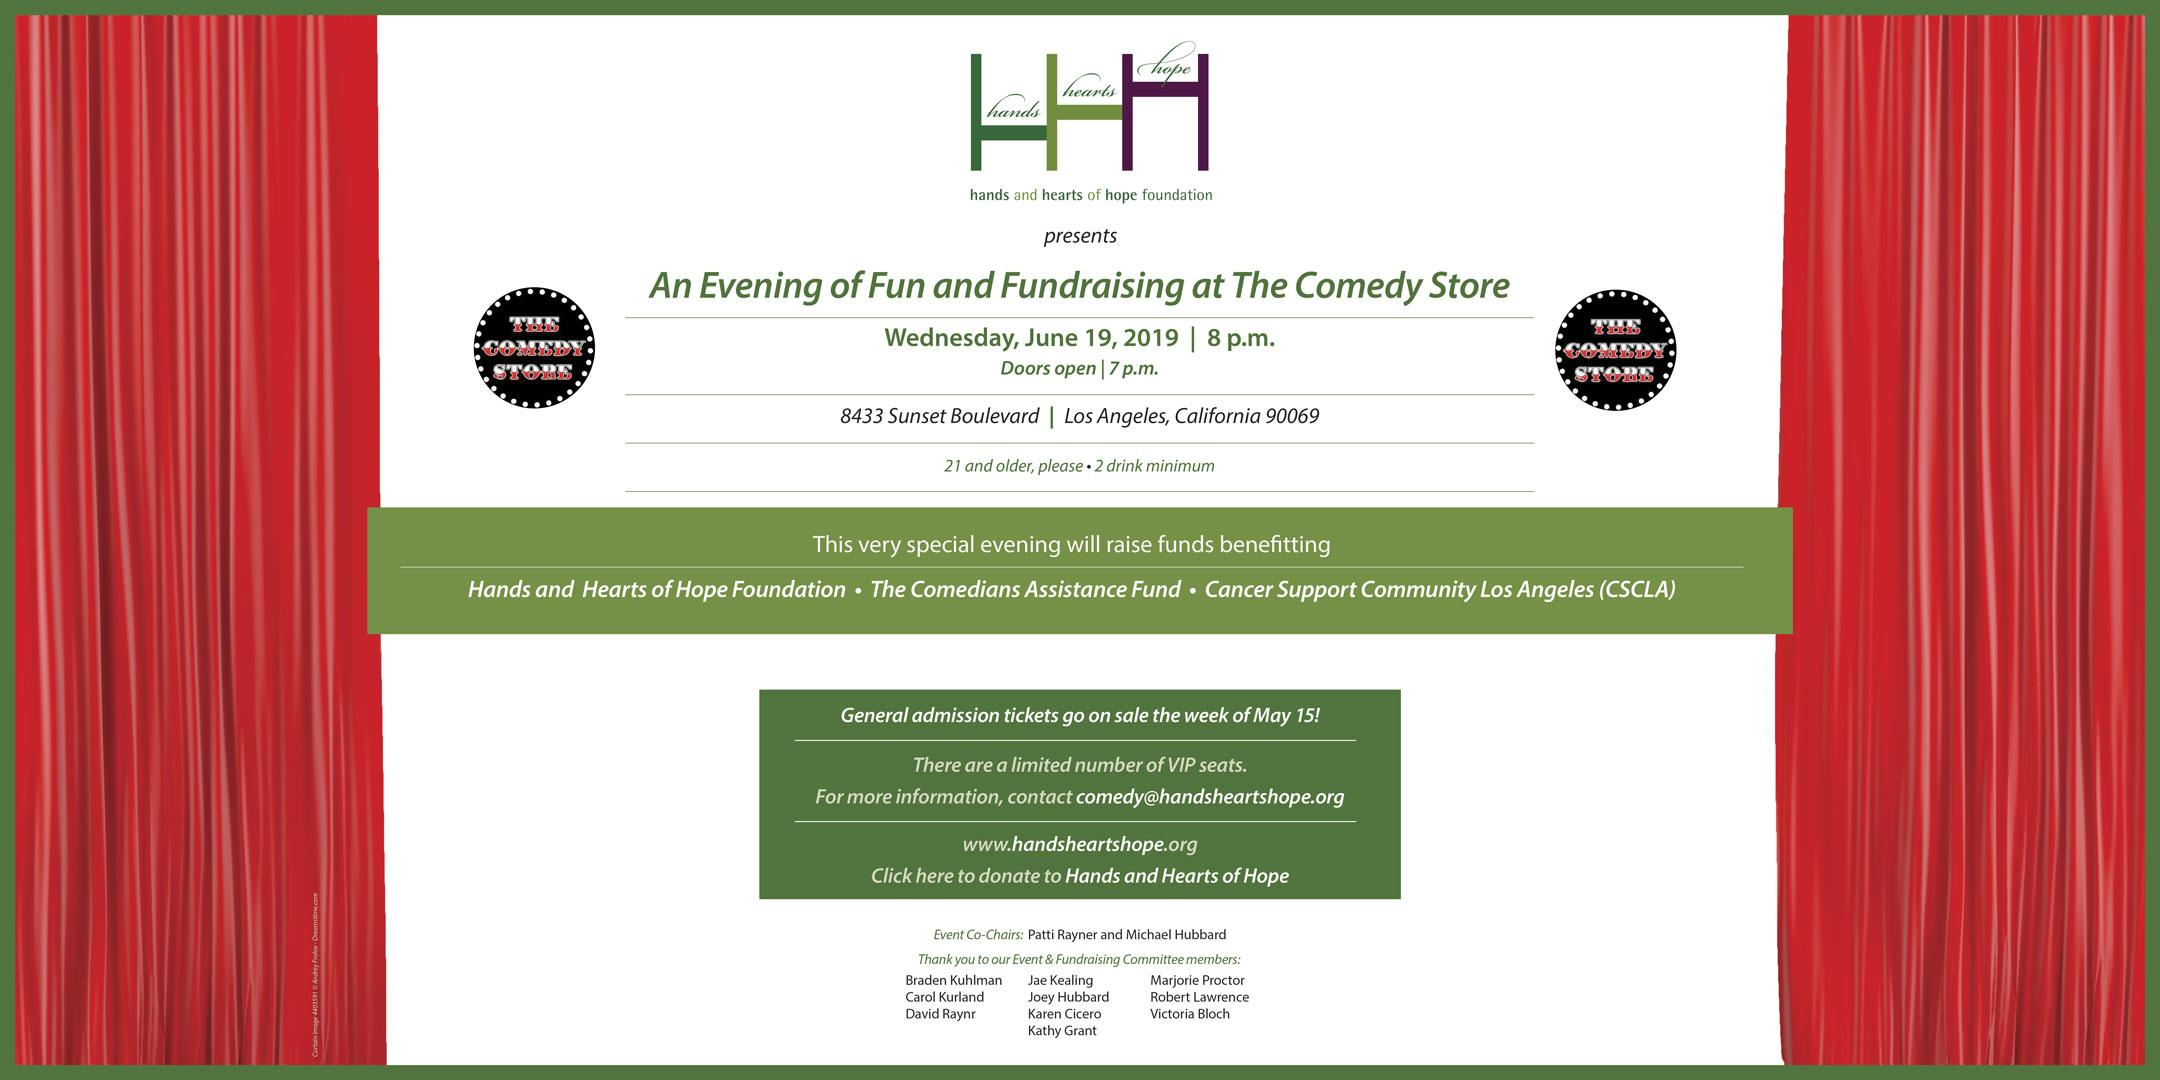 EVENING OF FUN AND FUNDRAISING Hosted by TOMMY DAVIDSON